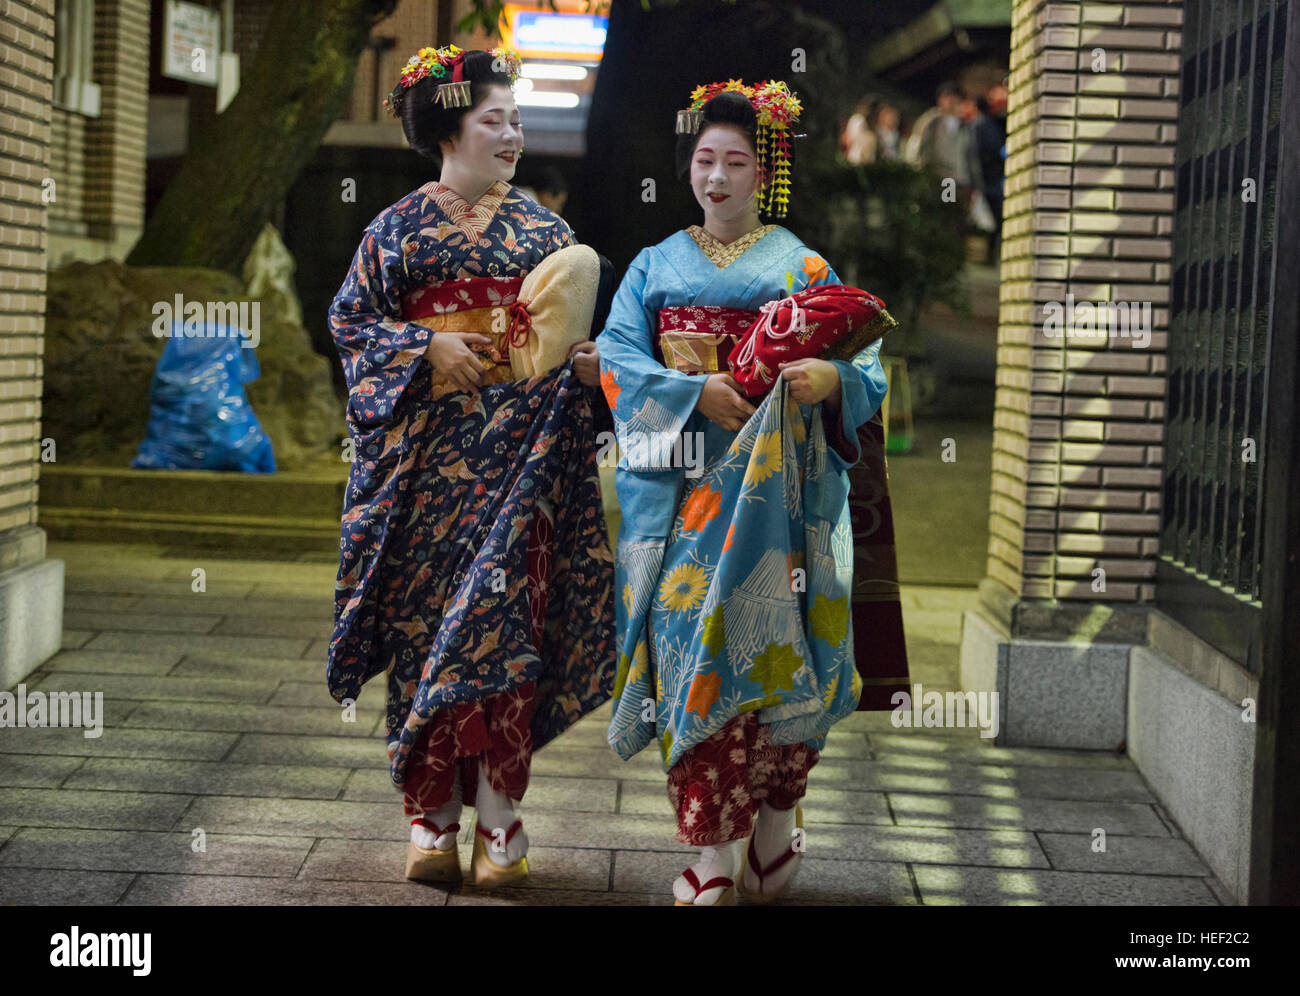 Two maiko walking, Gion, Kyoto, Japan - Stock Image